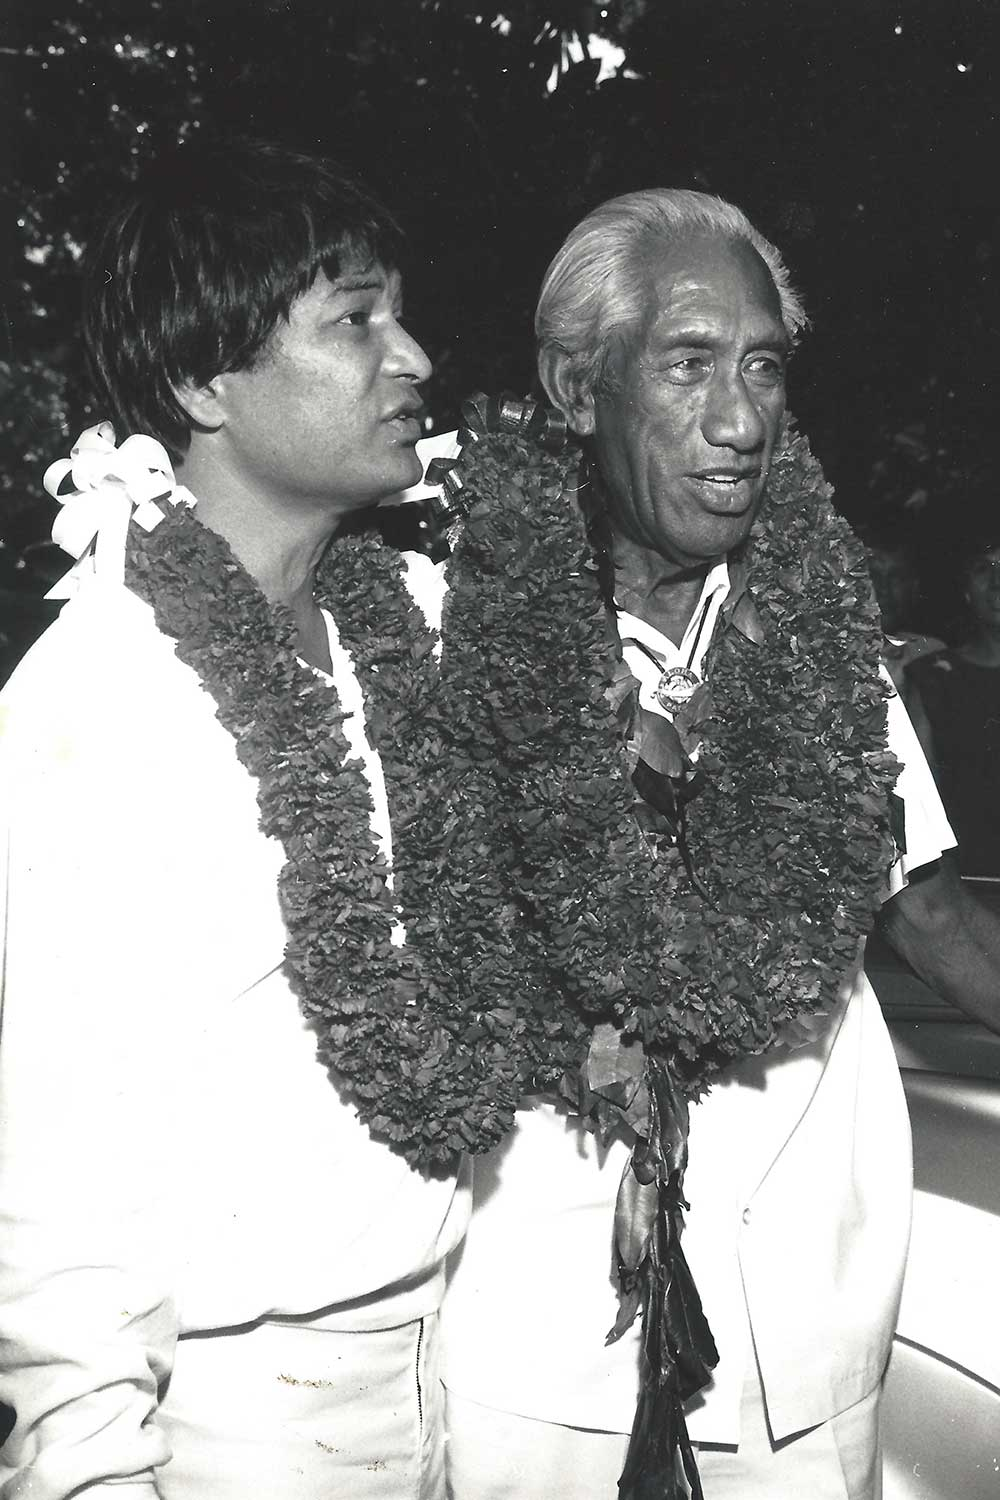 Black and white photo of Don Ho wearing a lei